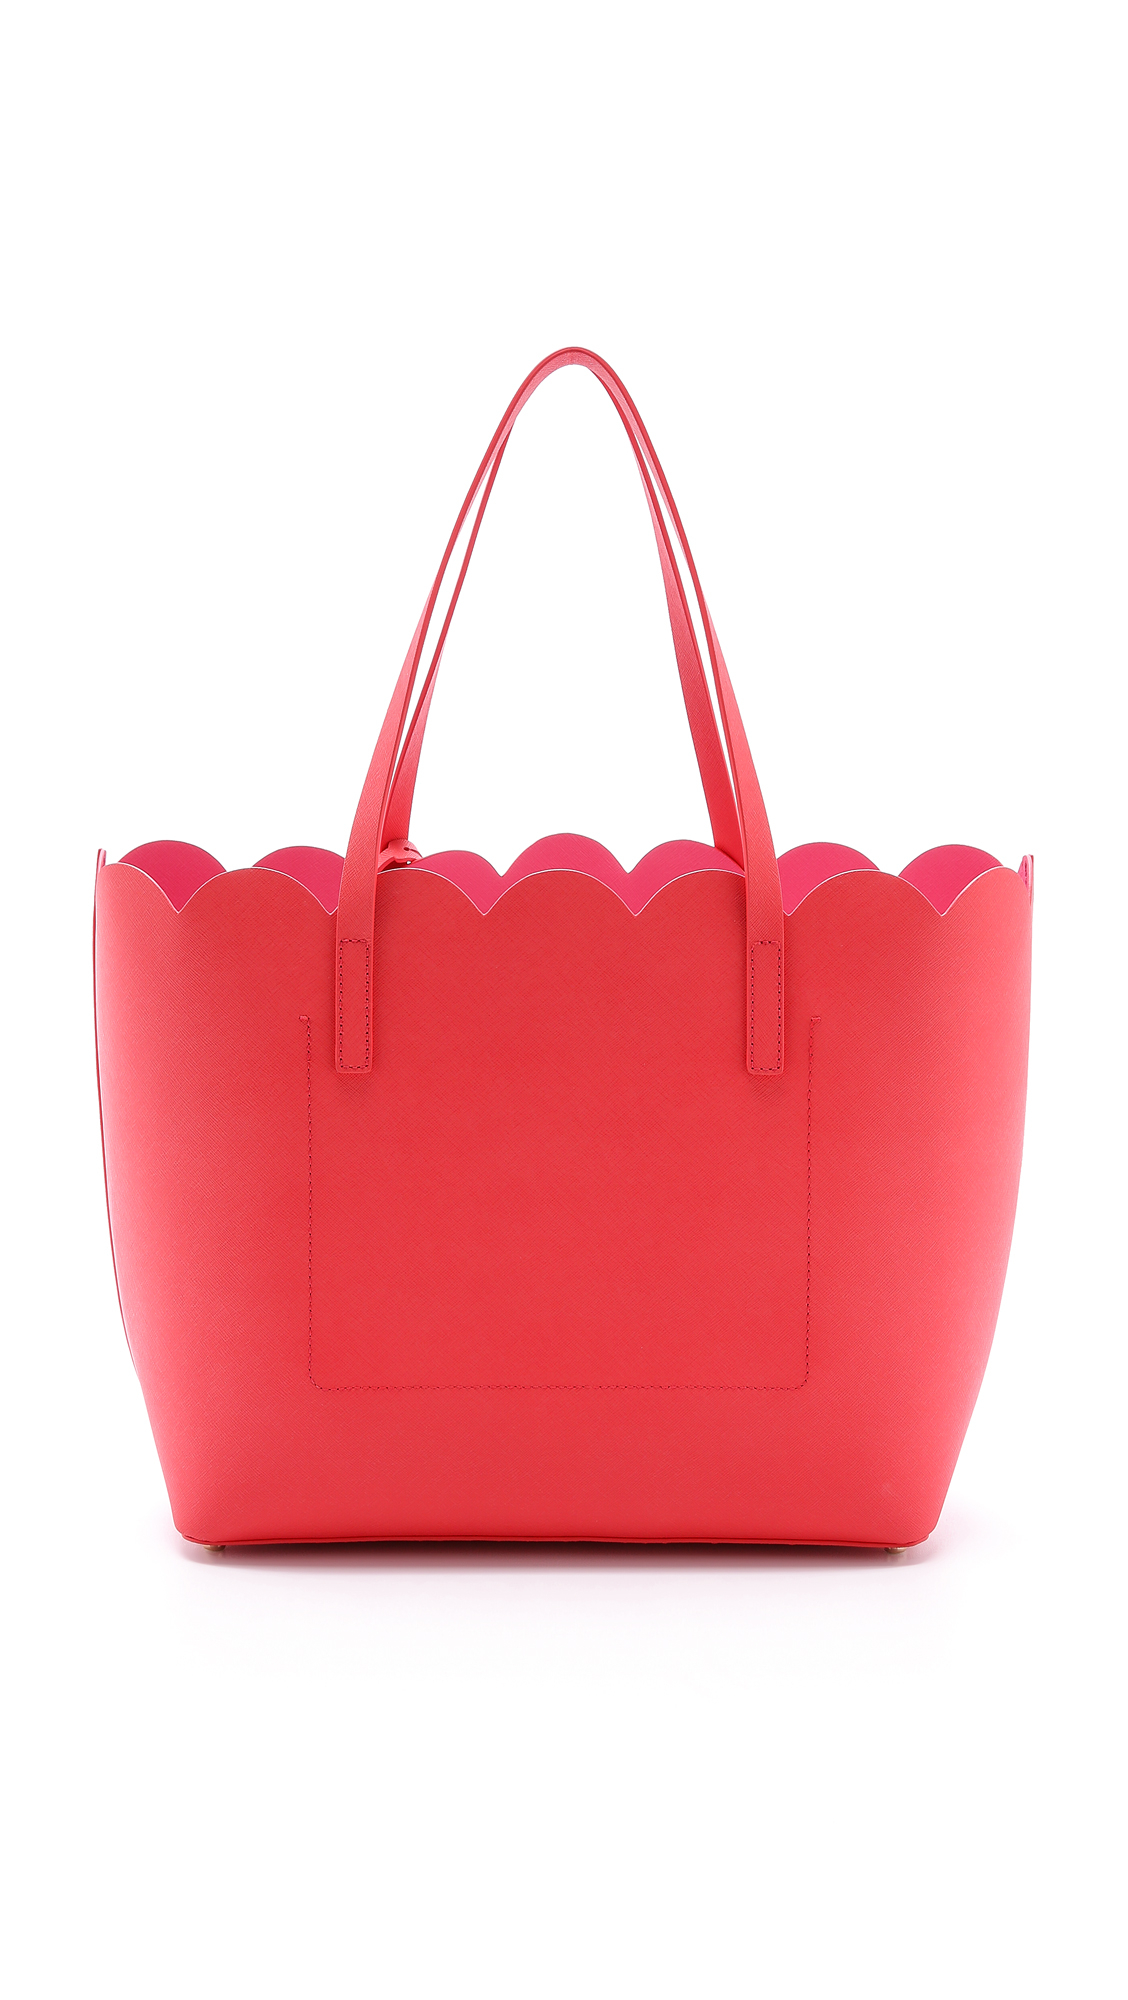 Kate Spade Lily Avenue Carrigan Tote - Island Deep/Fresh Air in Red